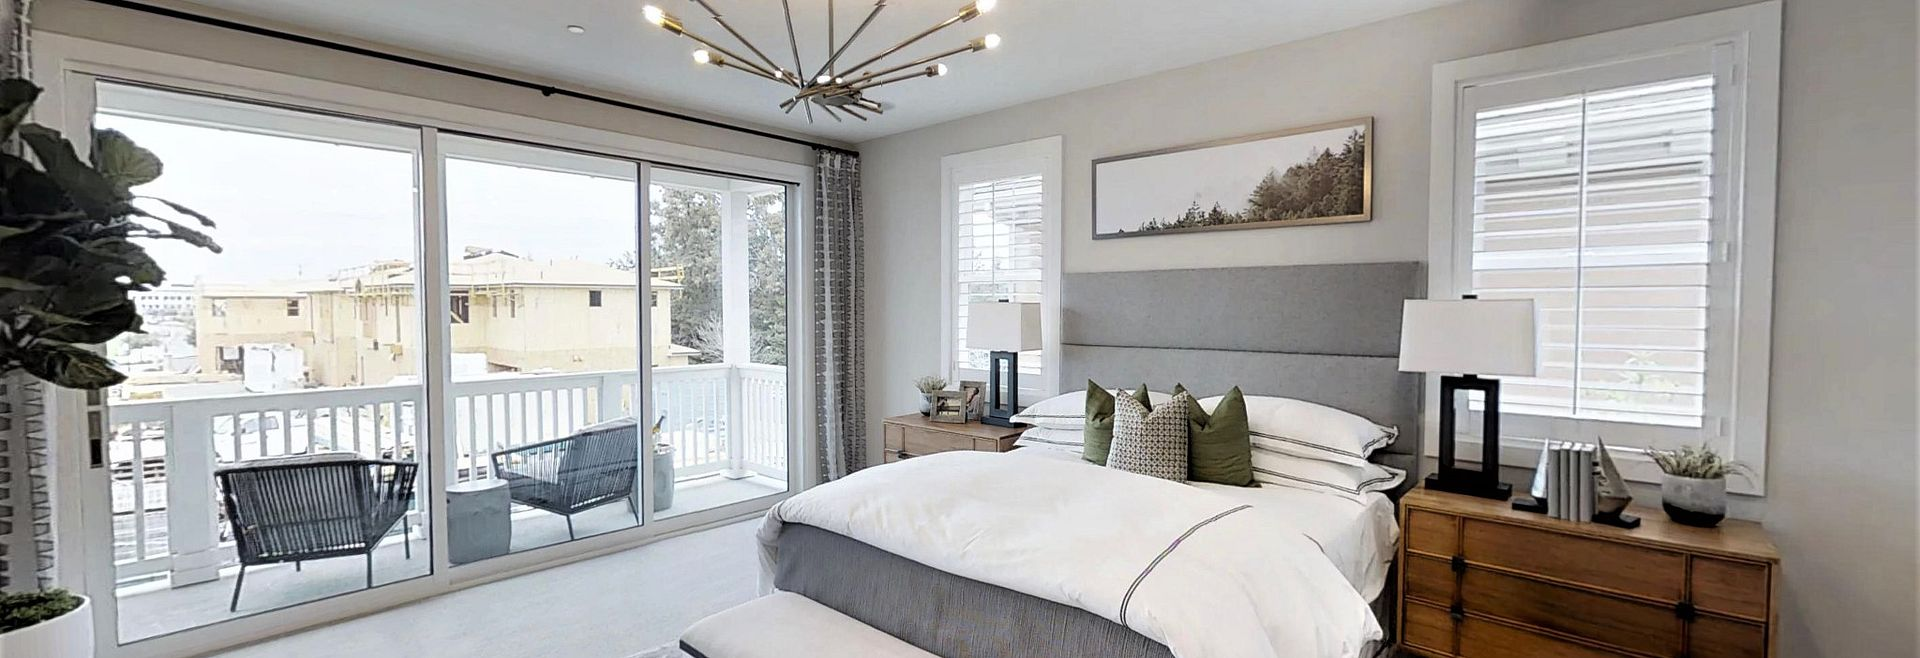 Victory at Bay Meadows Plan 1 Master Bedroom